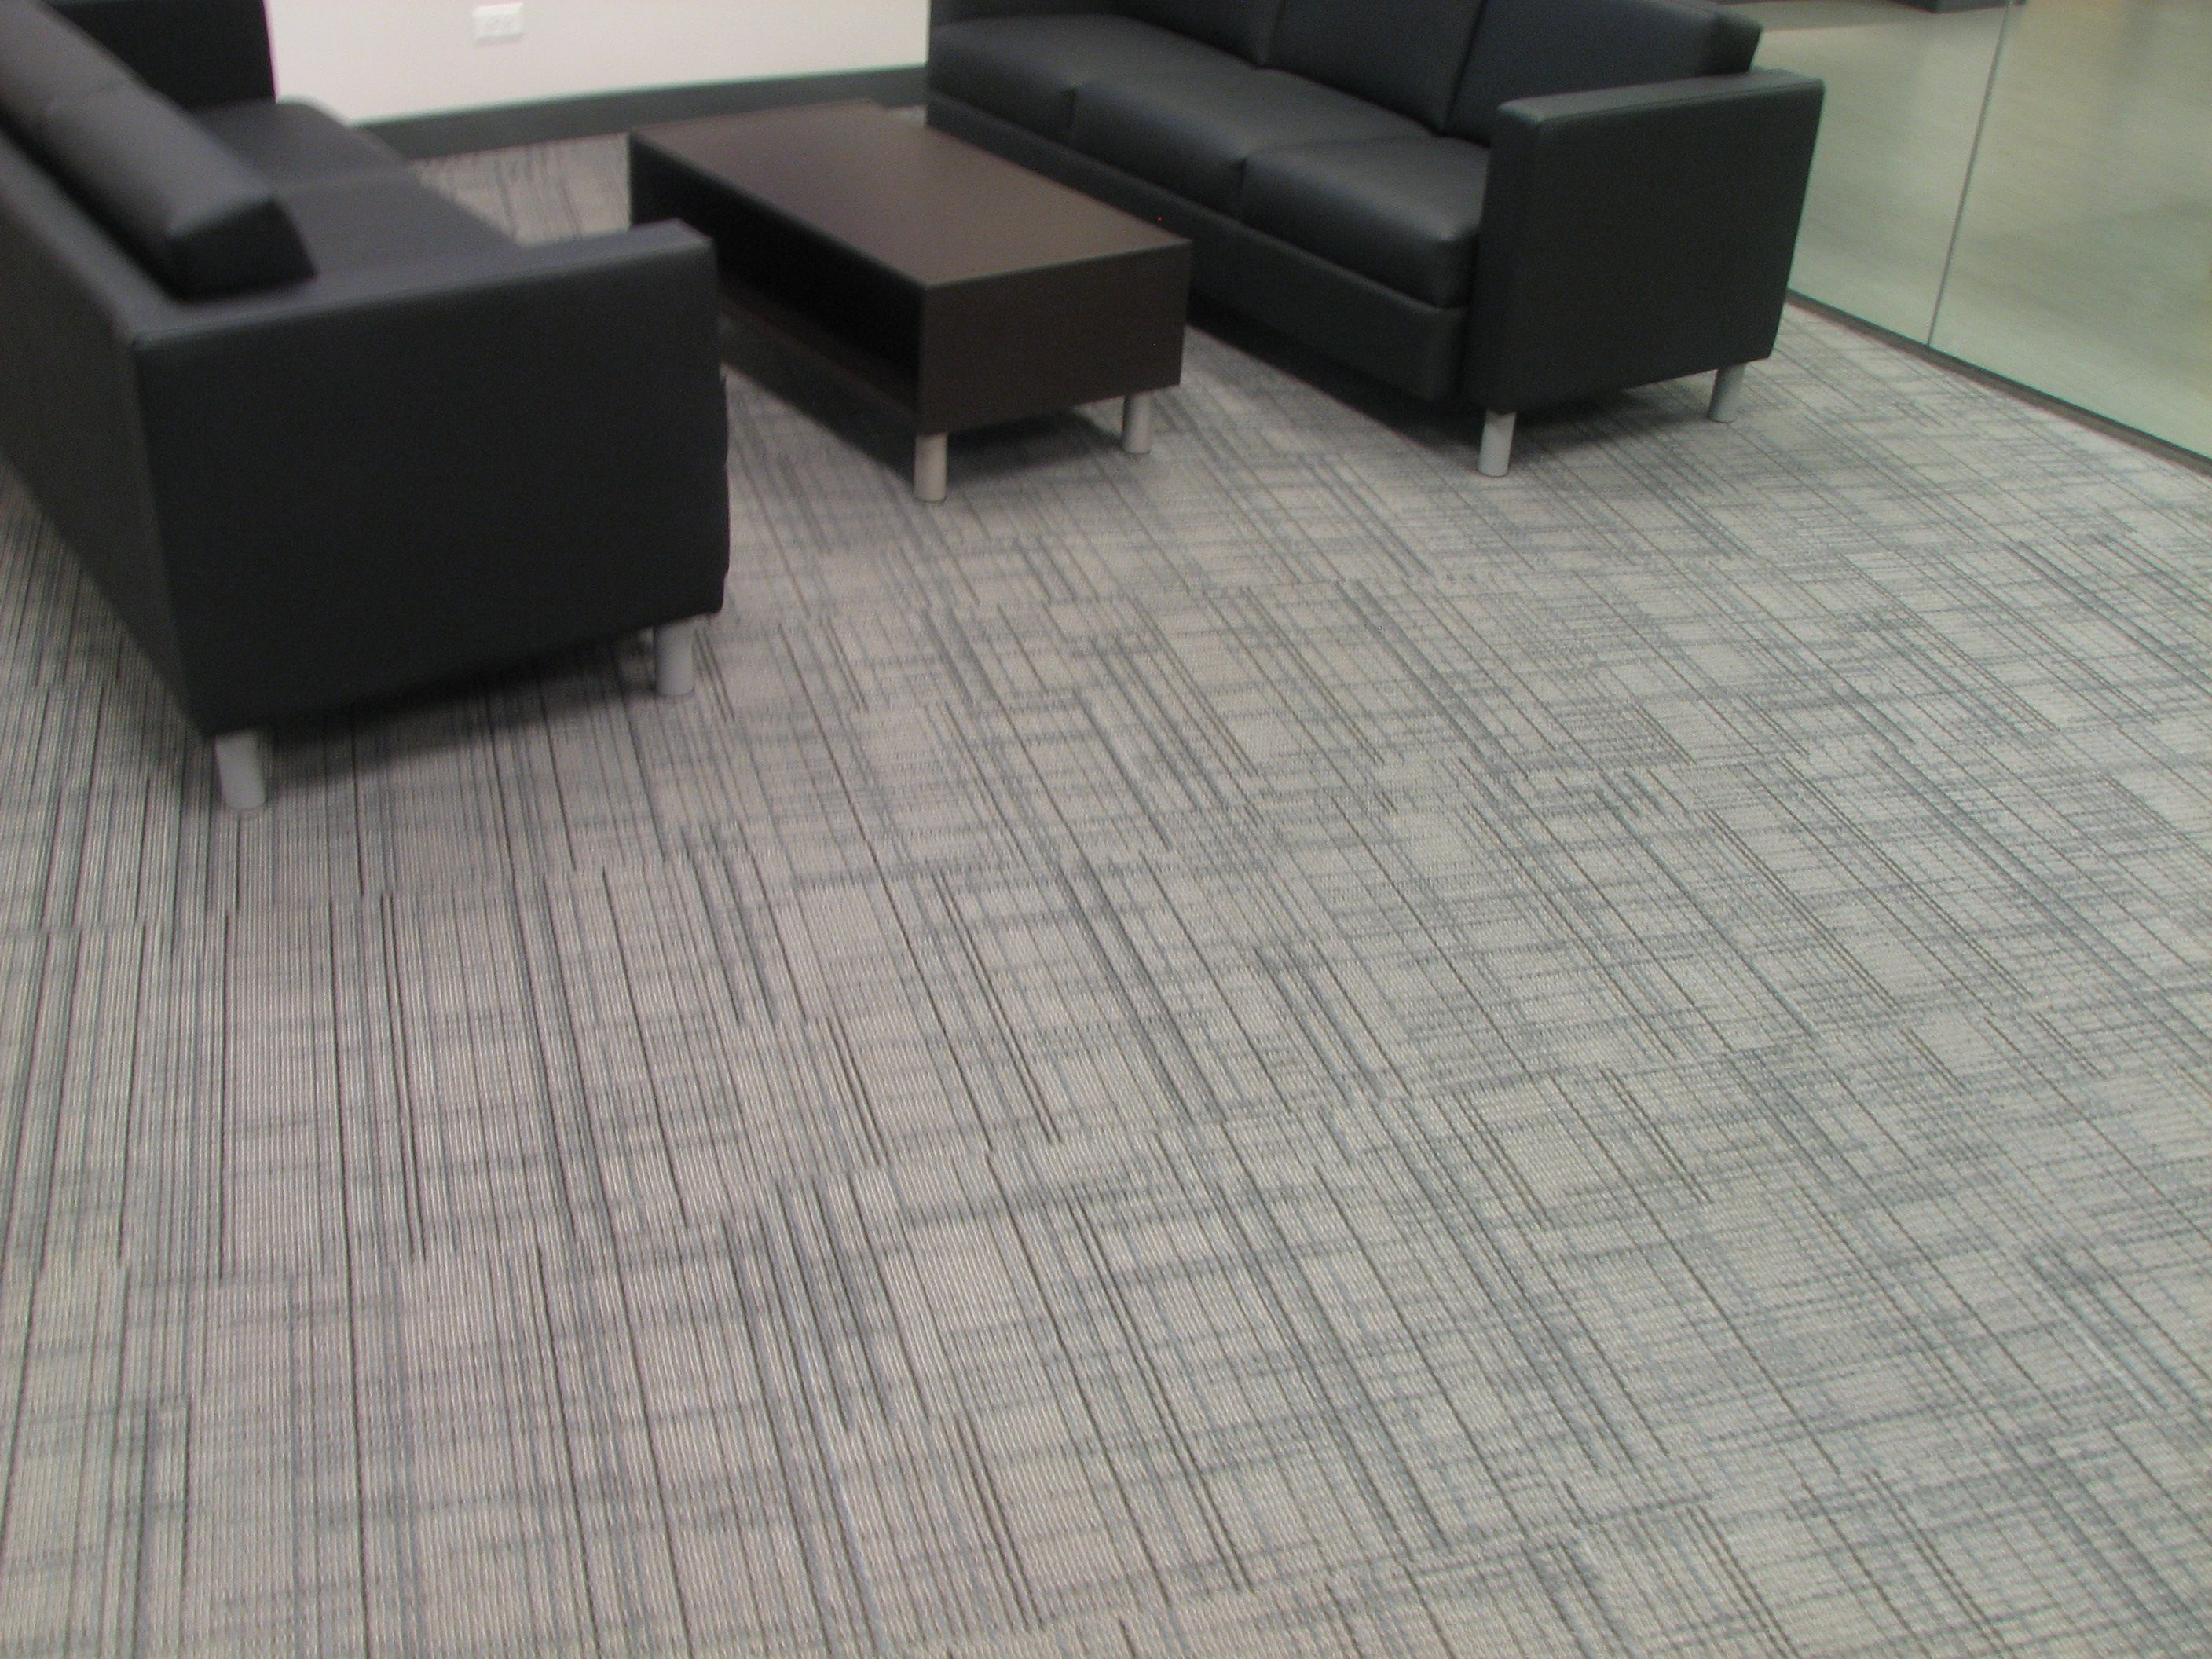 Ef Contract S Crossing Tile Installed On 45 Degree Angle Tile Installation Carpet Tiles Flooring